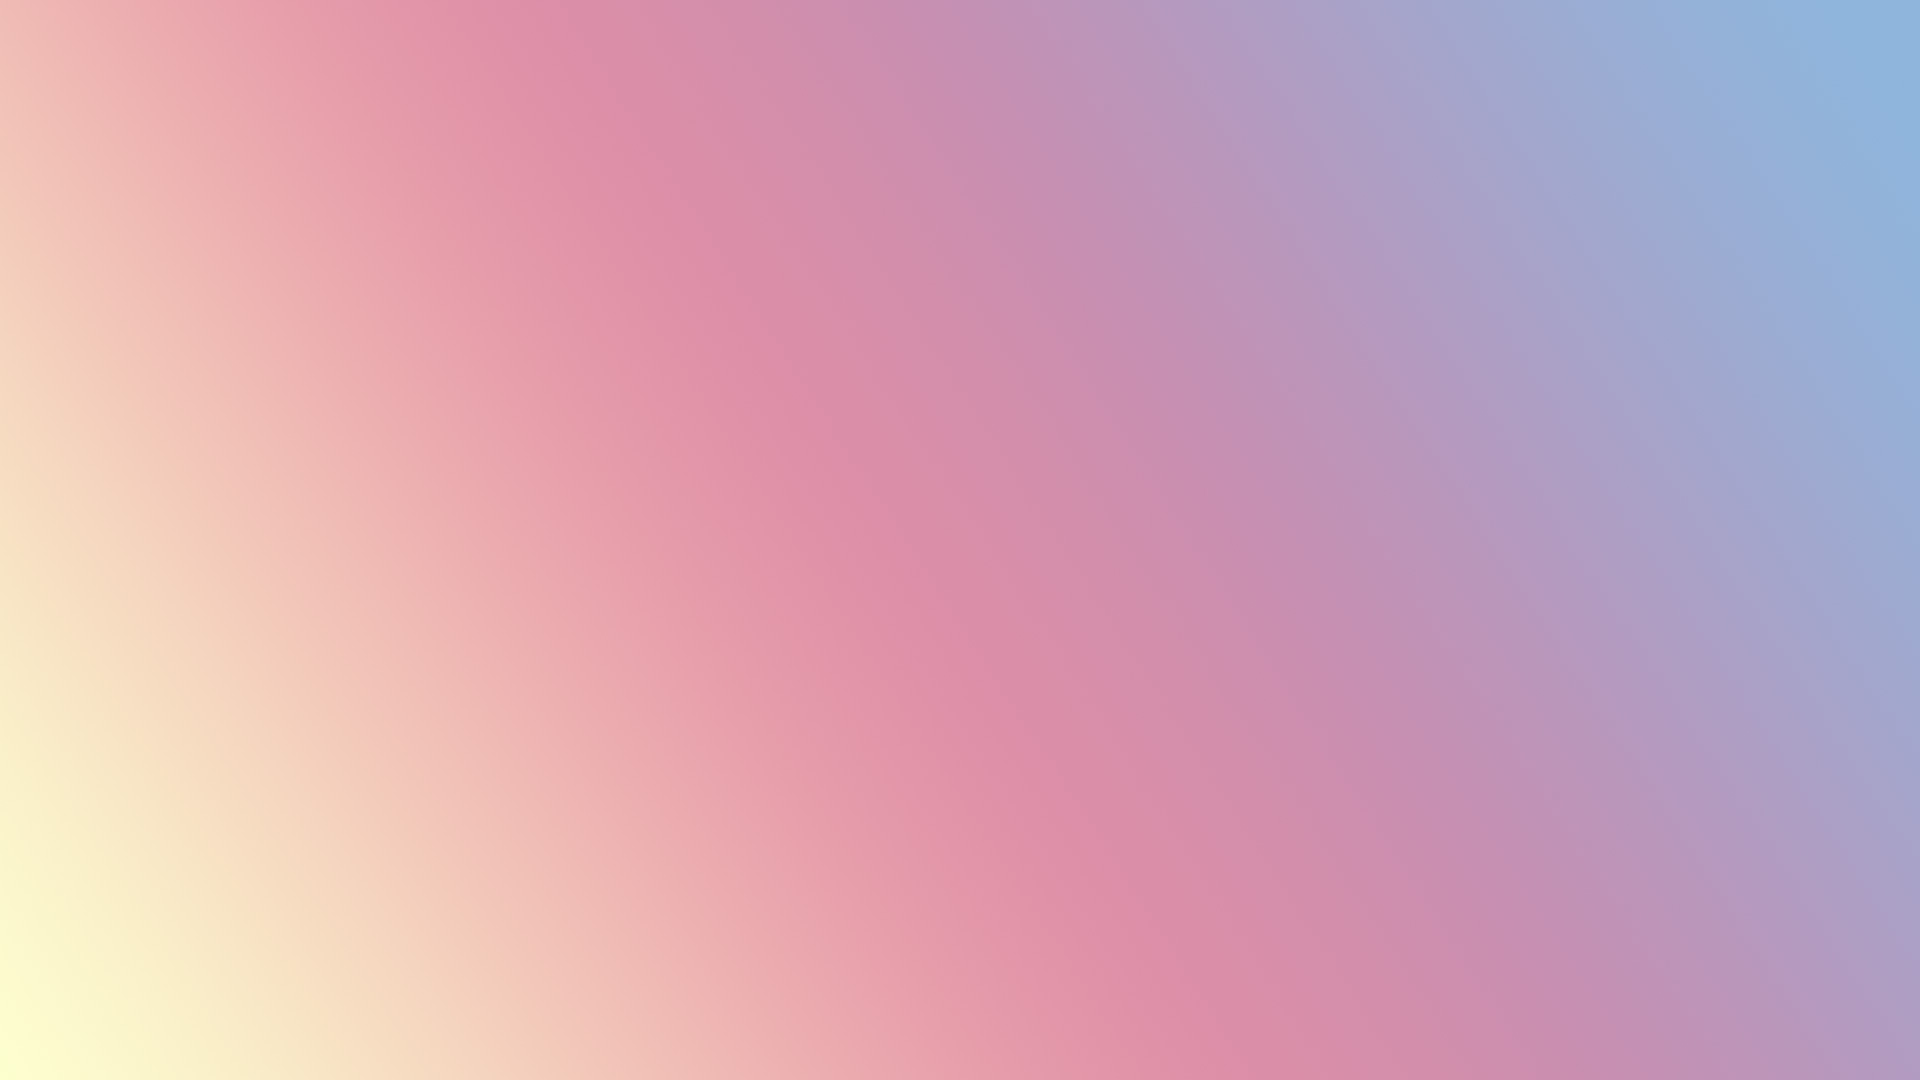 three-tone-Presentation-Gradient-Background